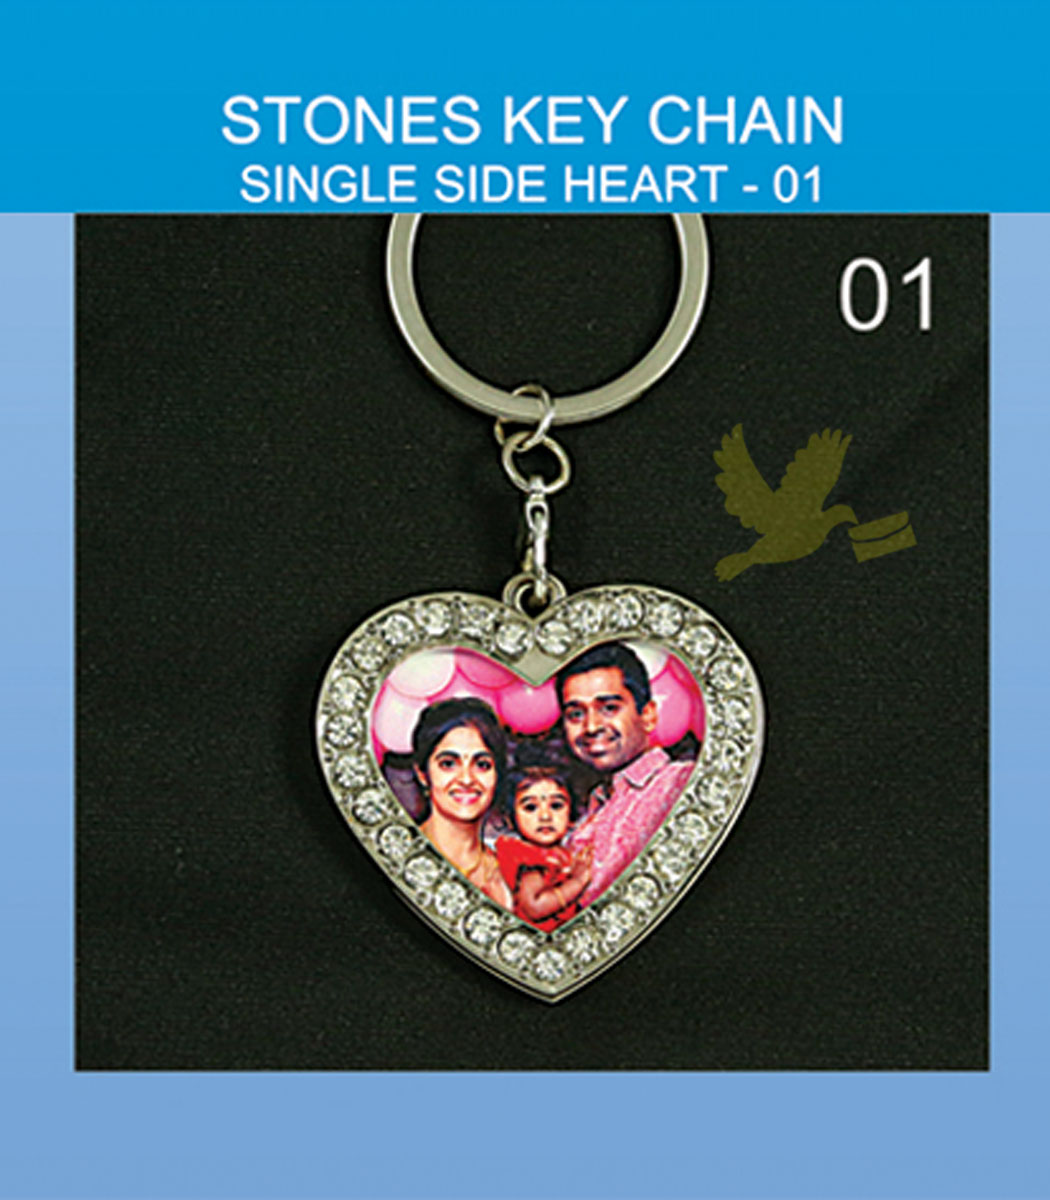 Heart stone key chain single side